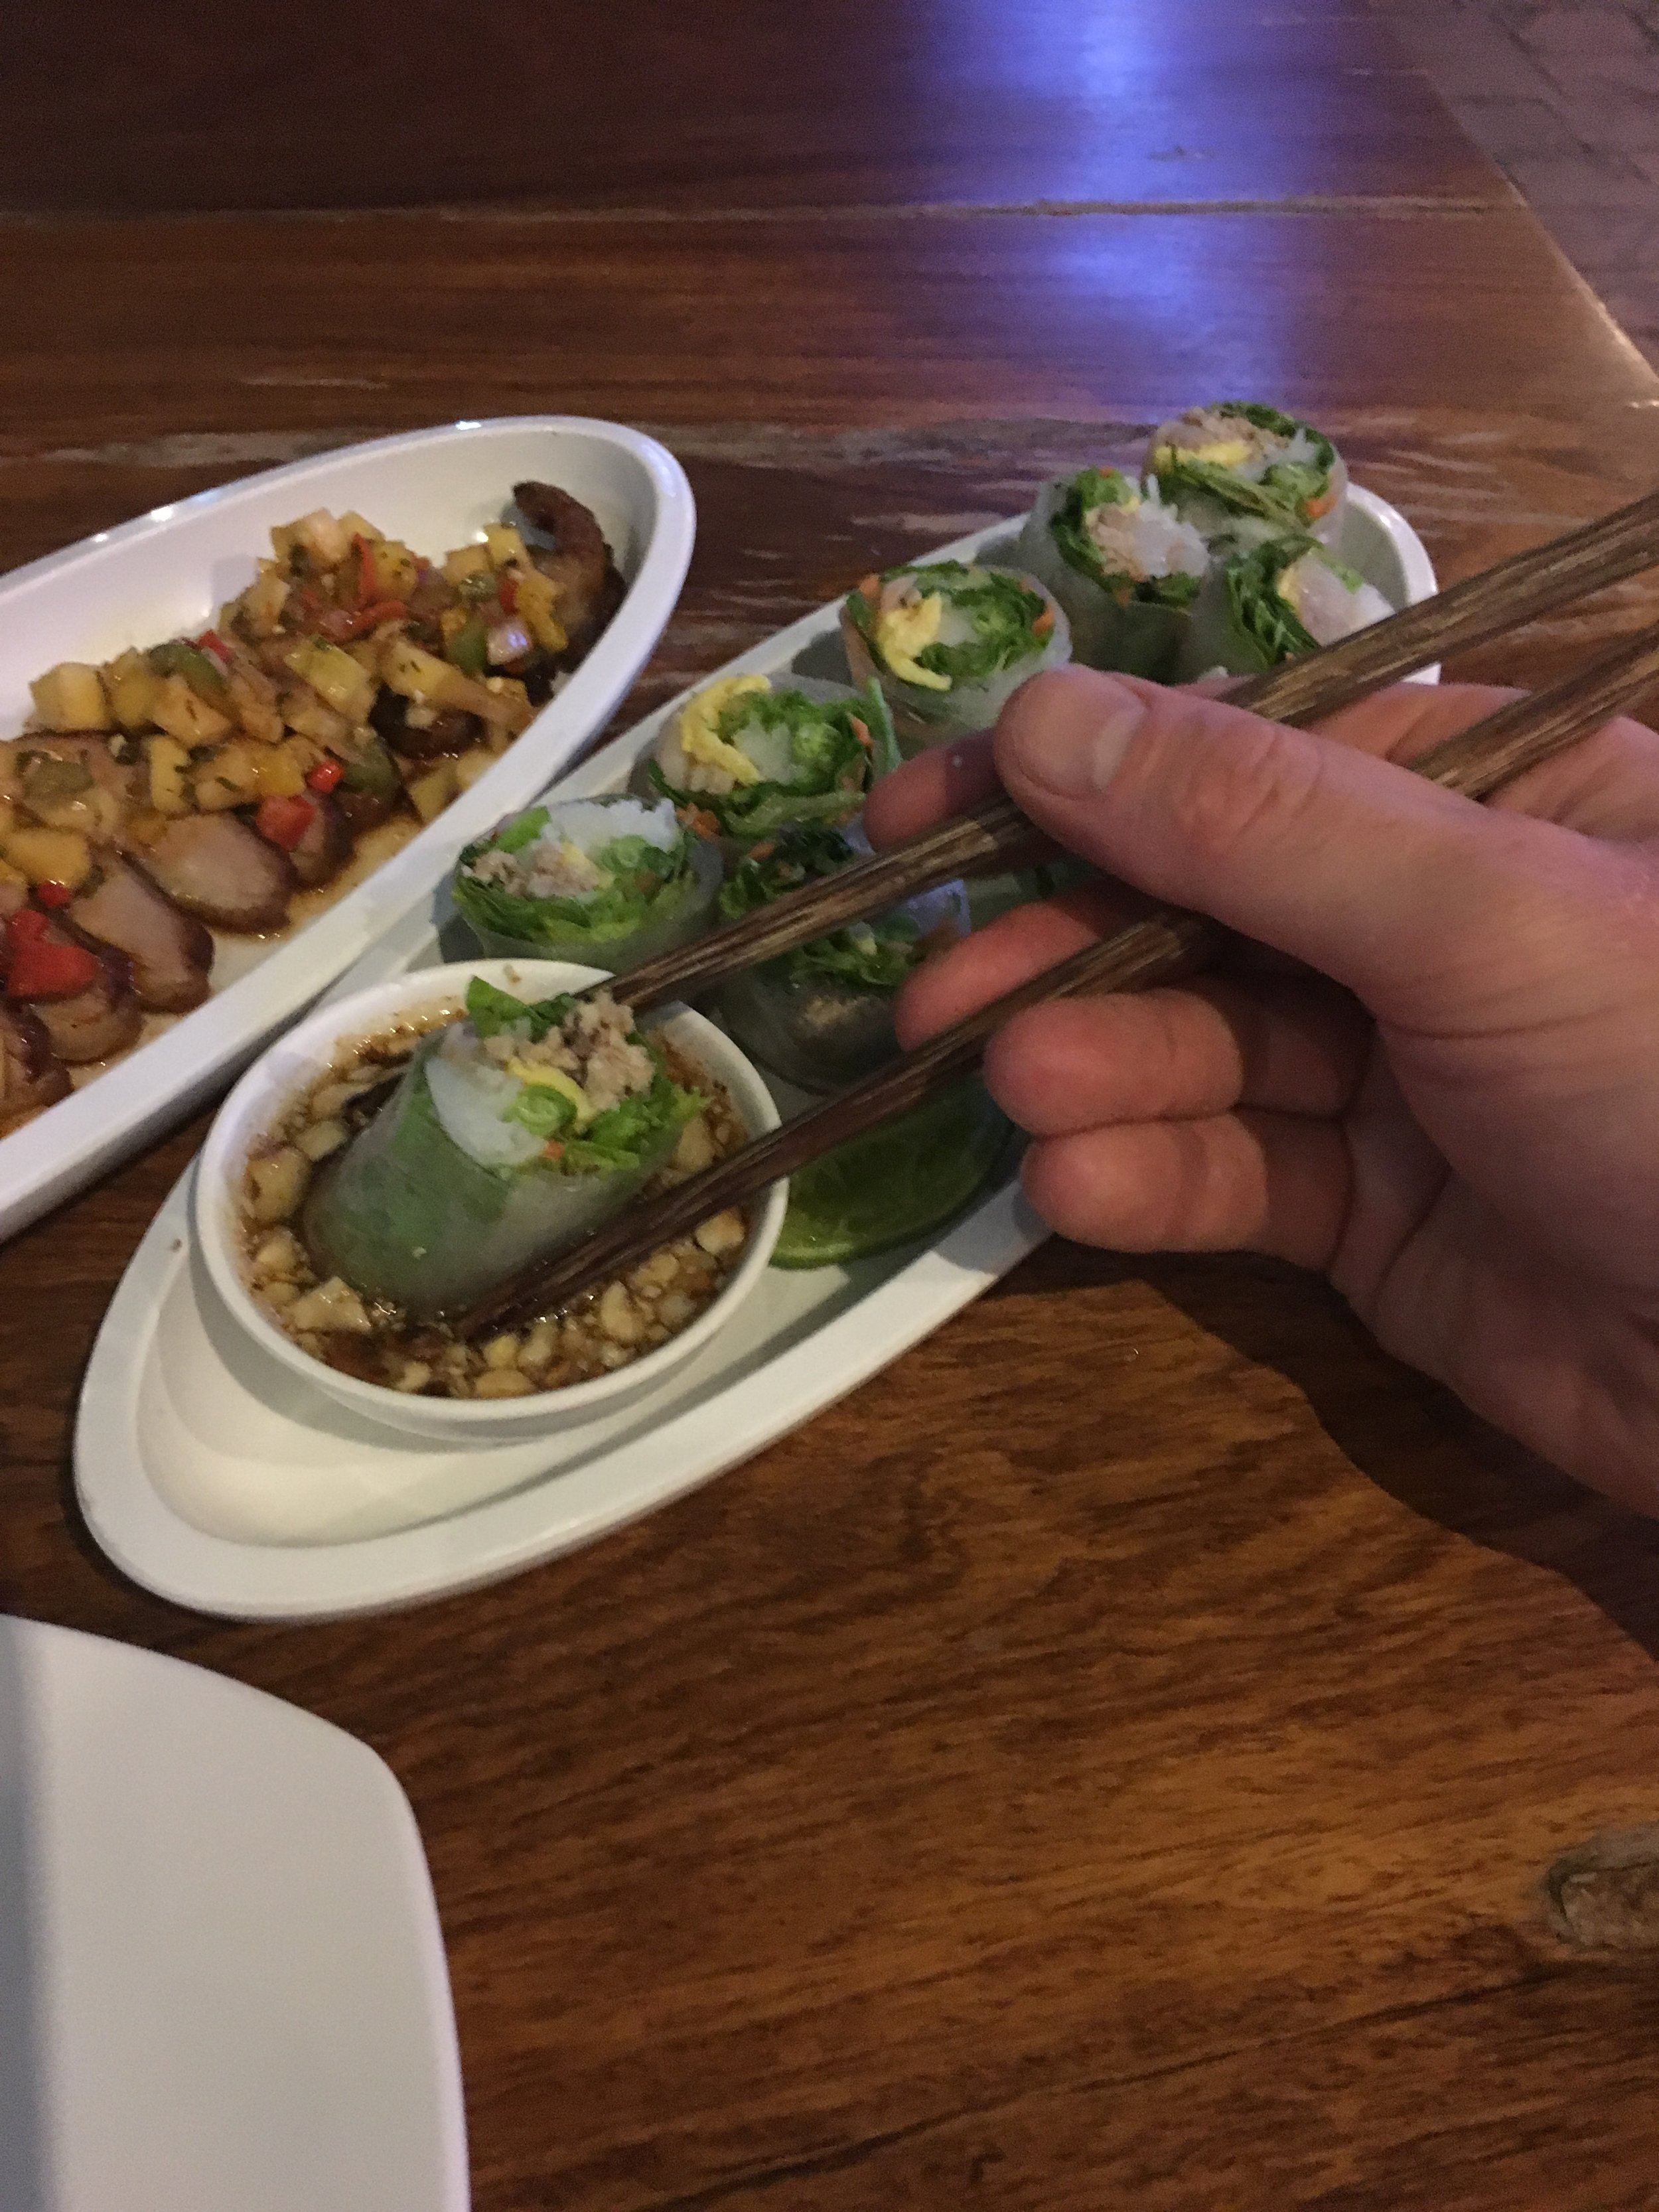 Fresh spring rolls with sweet, peanut dipping sauce